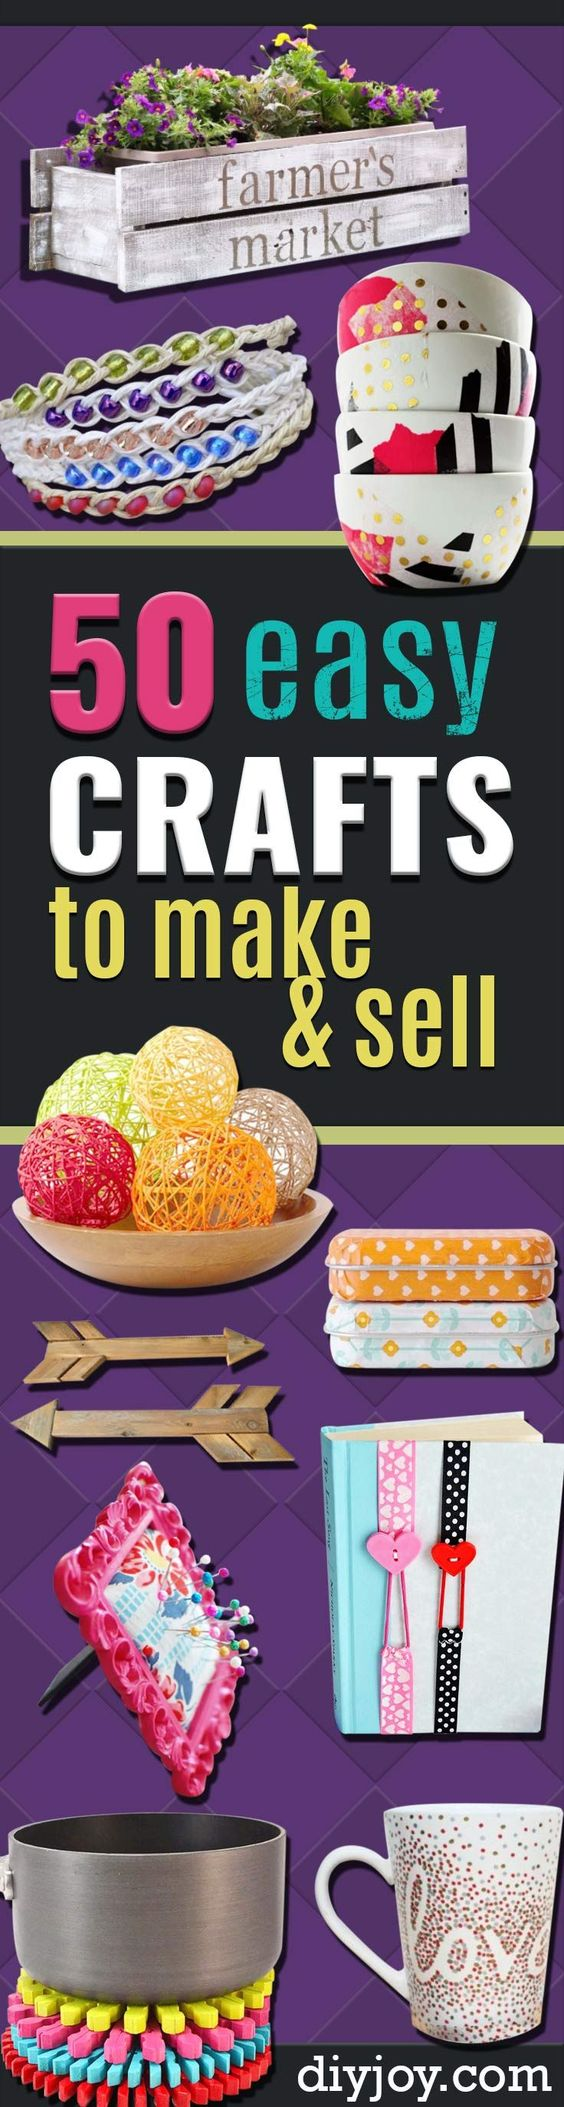 50 easy crafts to make and sell homemade craft fairs for Cheap crafts to make and sell